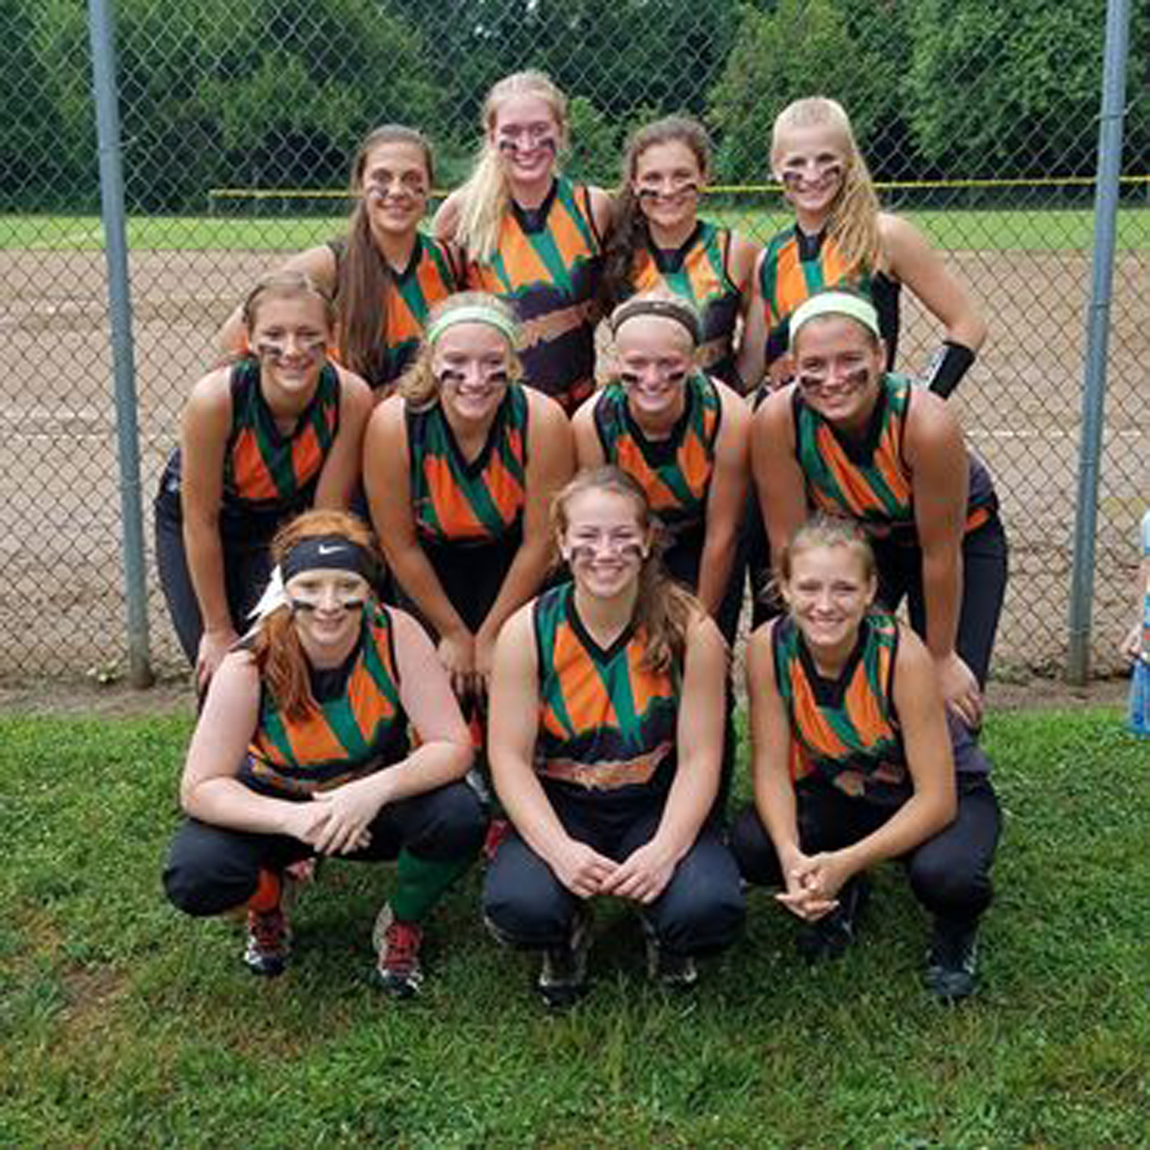 Tri-City Thunder Completes Great Season (07/25/18) | Clarion Sports Zone